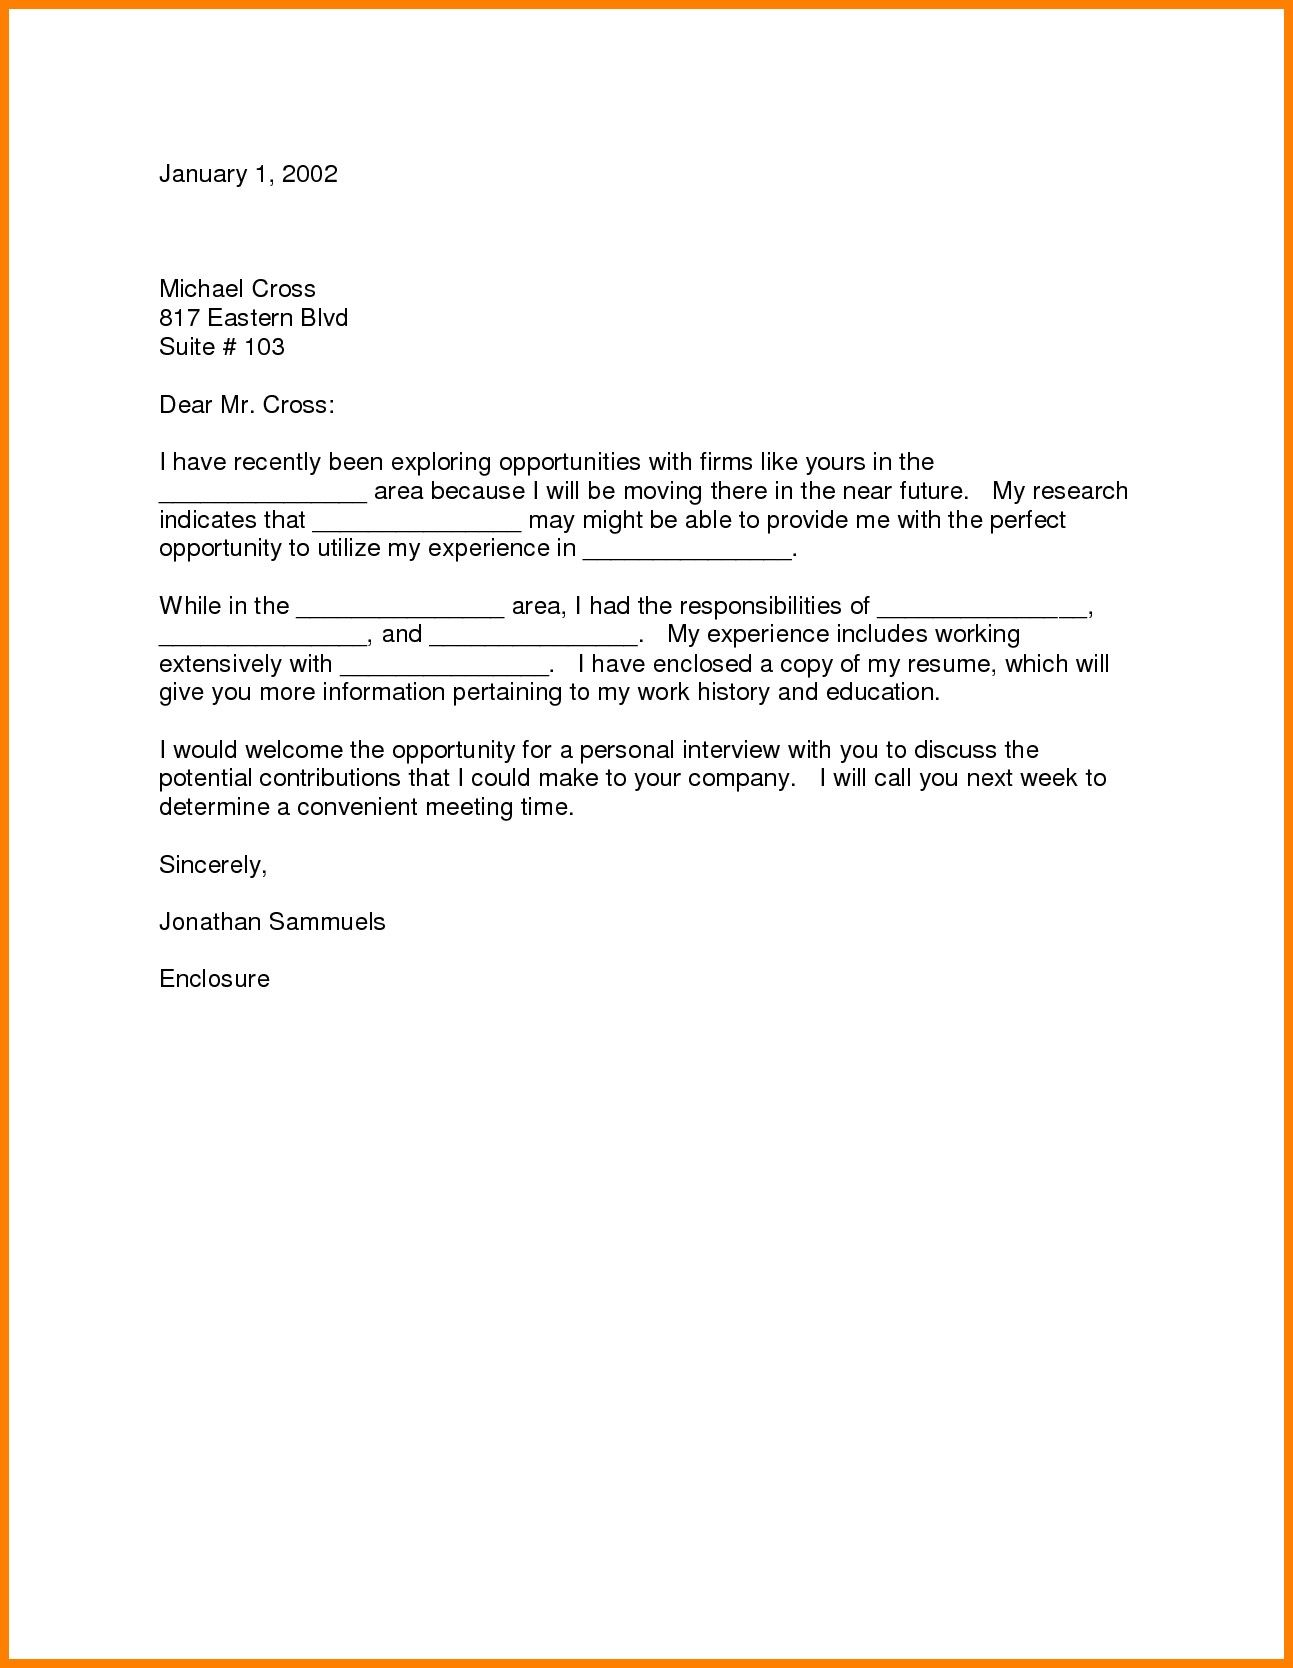 Cover Letter With Relocation Examples - Need Answers to the ...